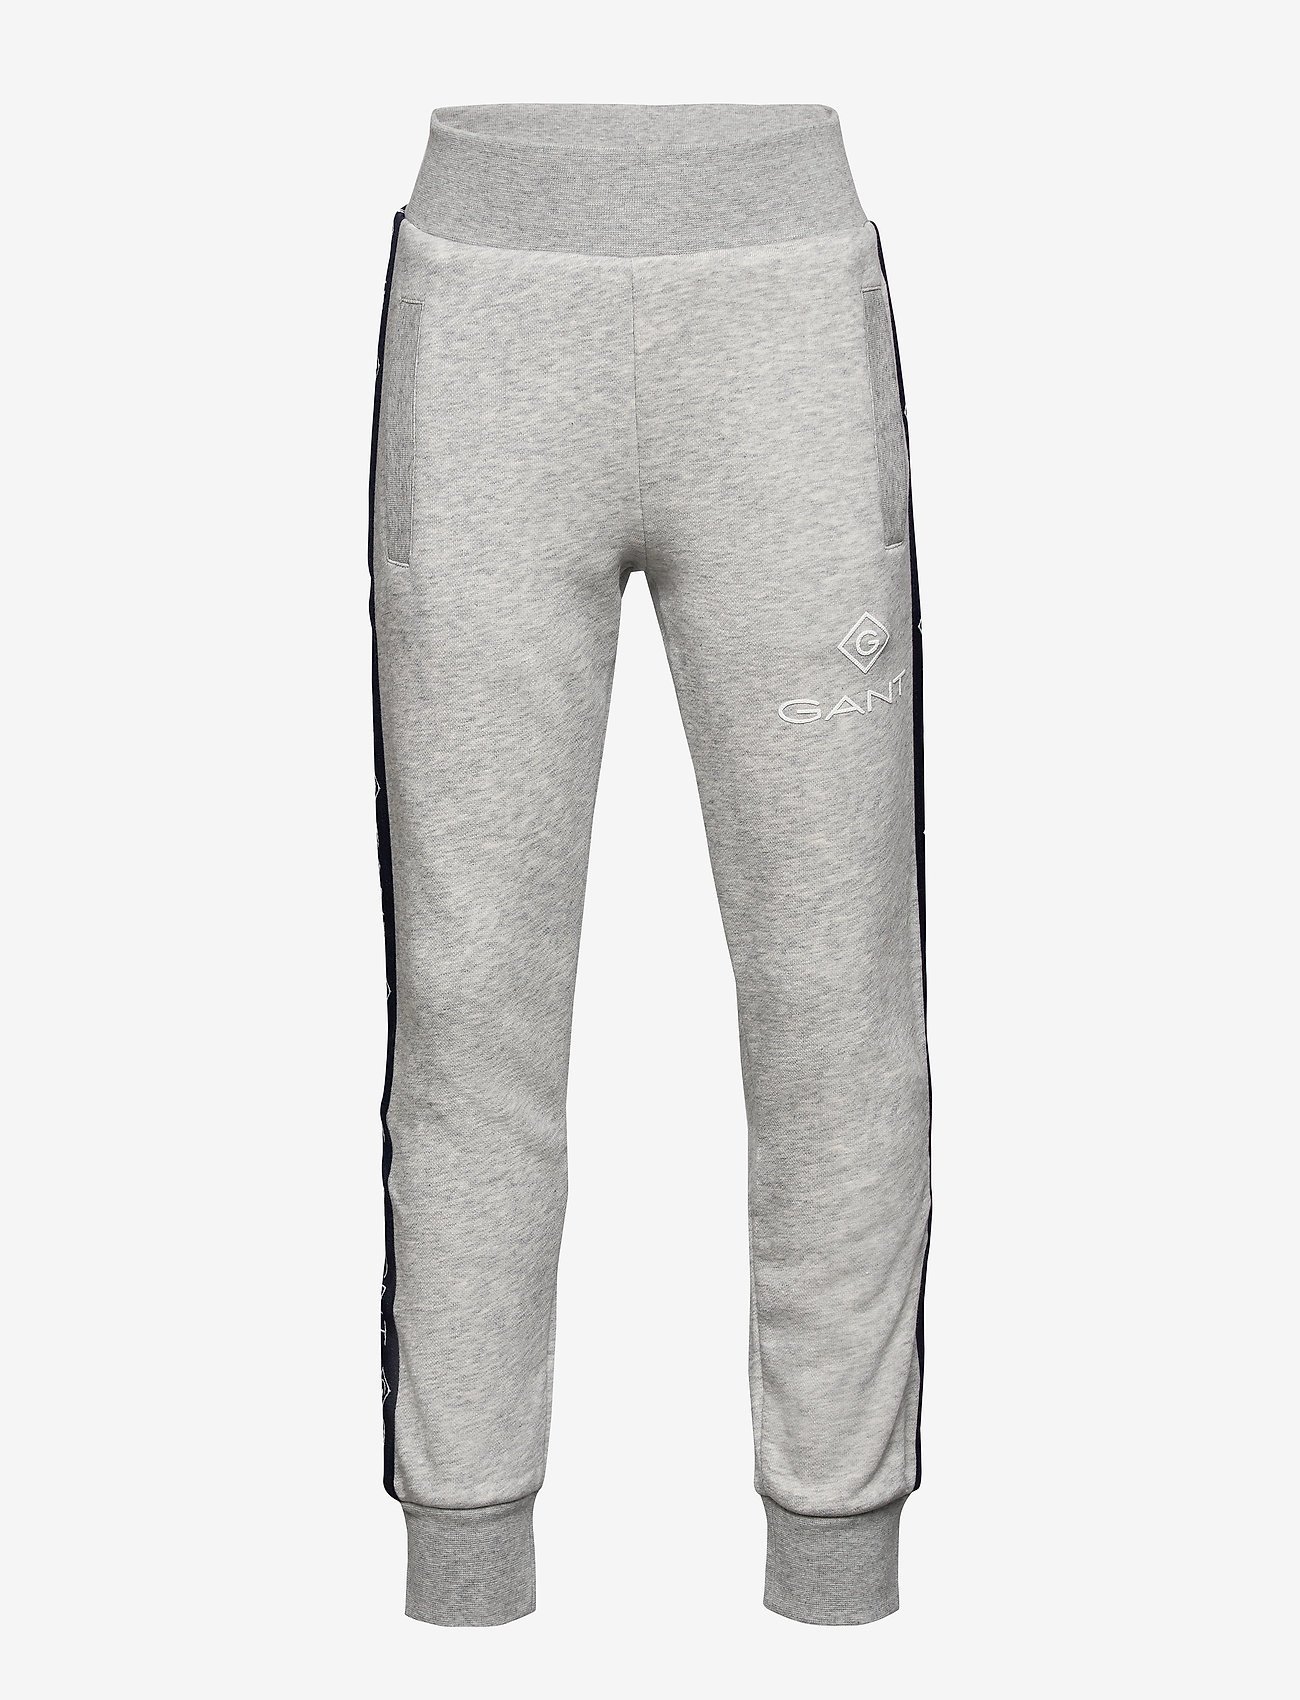 GANT - D1. LOCK UP STRIPE PANTS - jogginghosen - light grey melange - 0